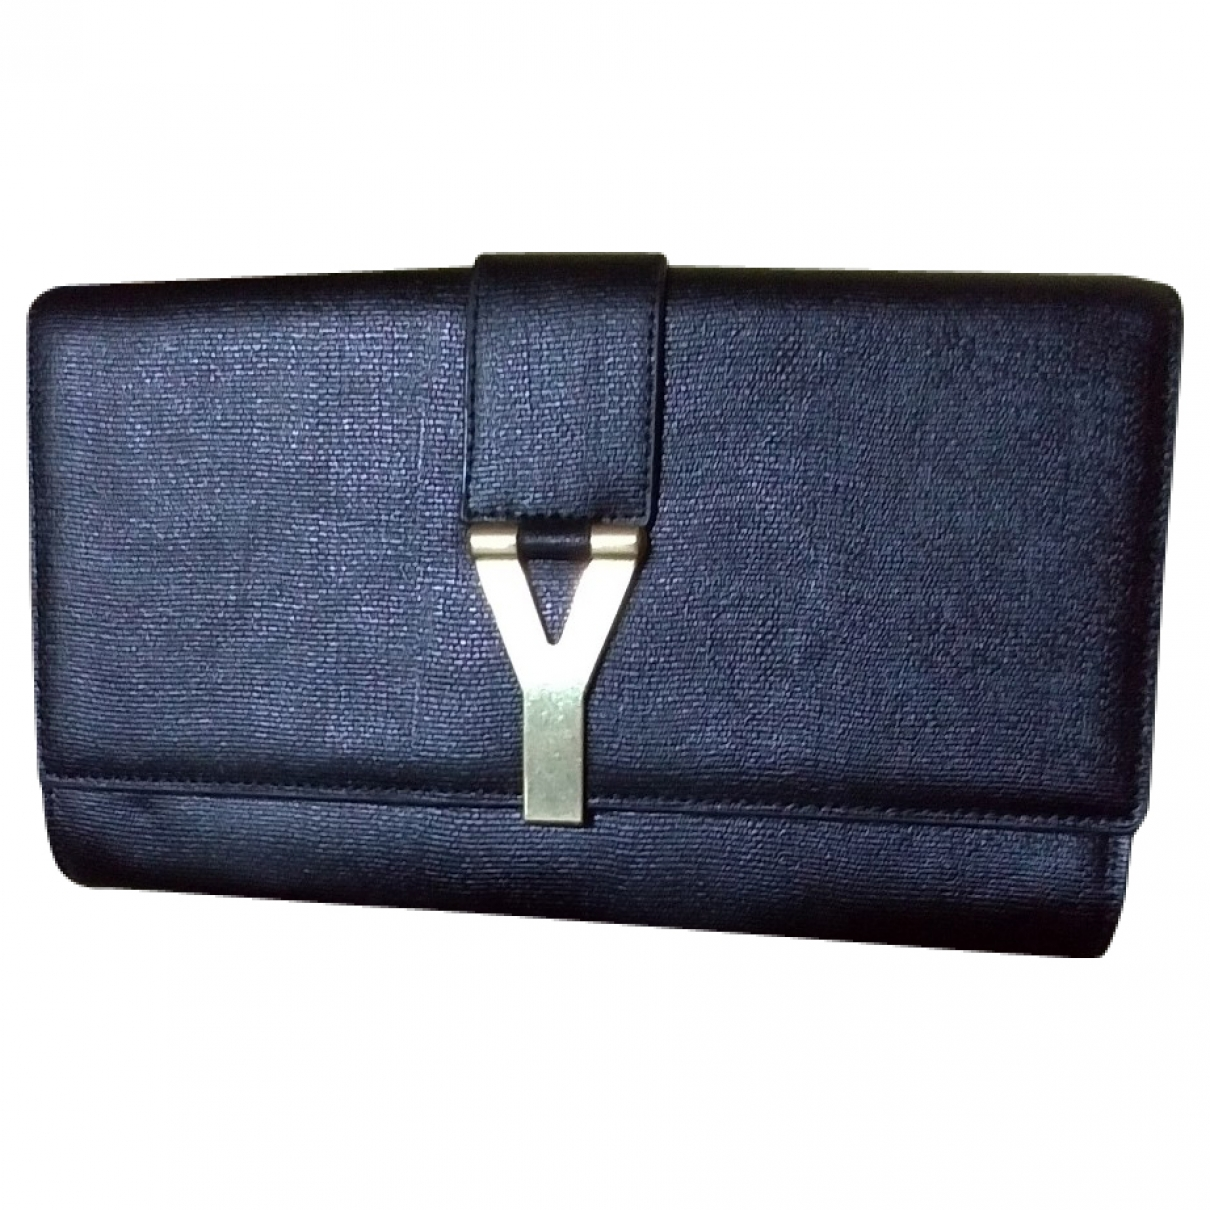 Yves Saint Laurent Chyc Clutch in  Schwarz Leder